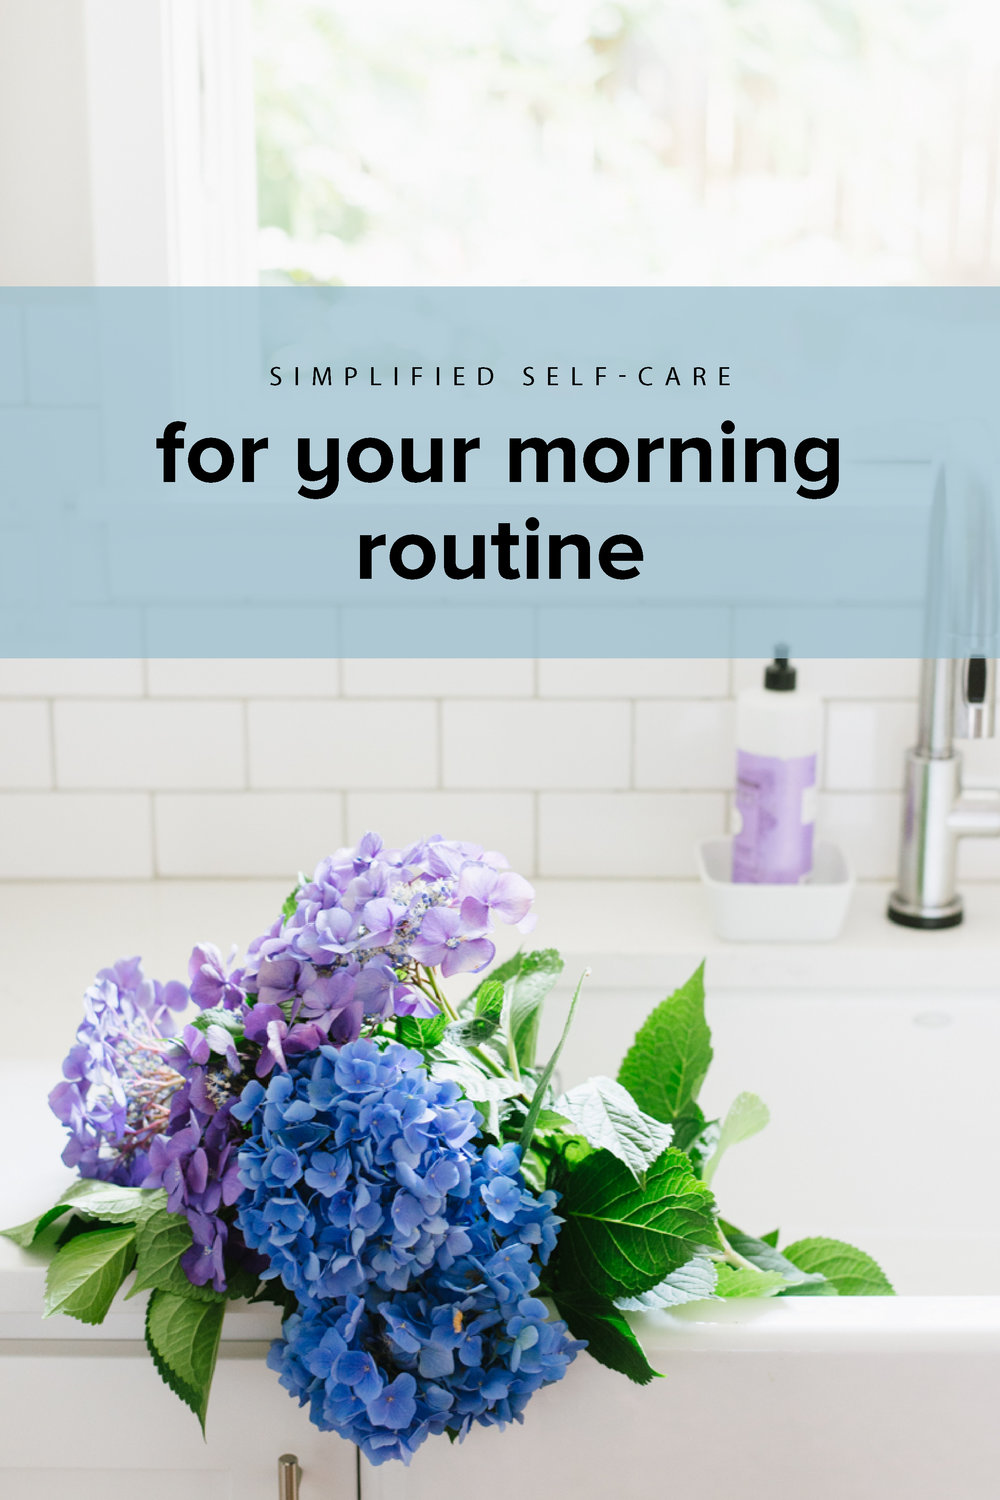 simplified self-care for your morning routine